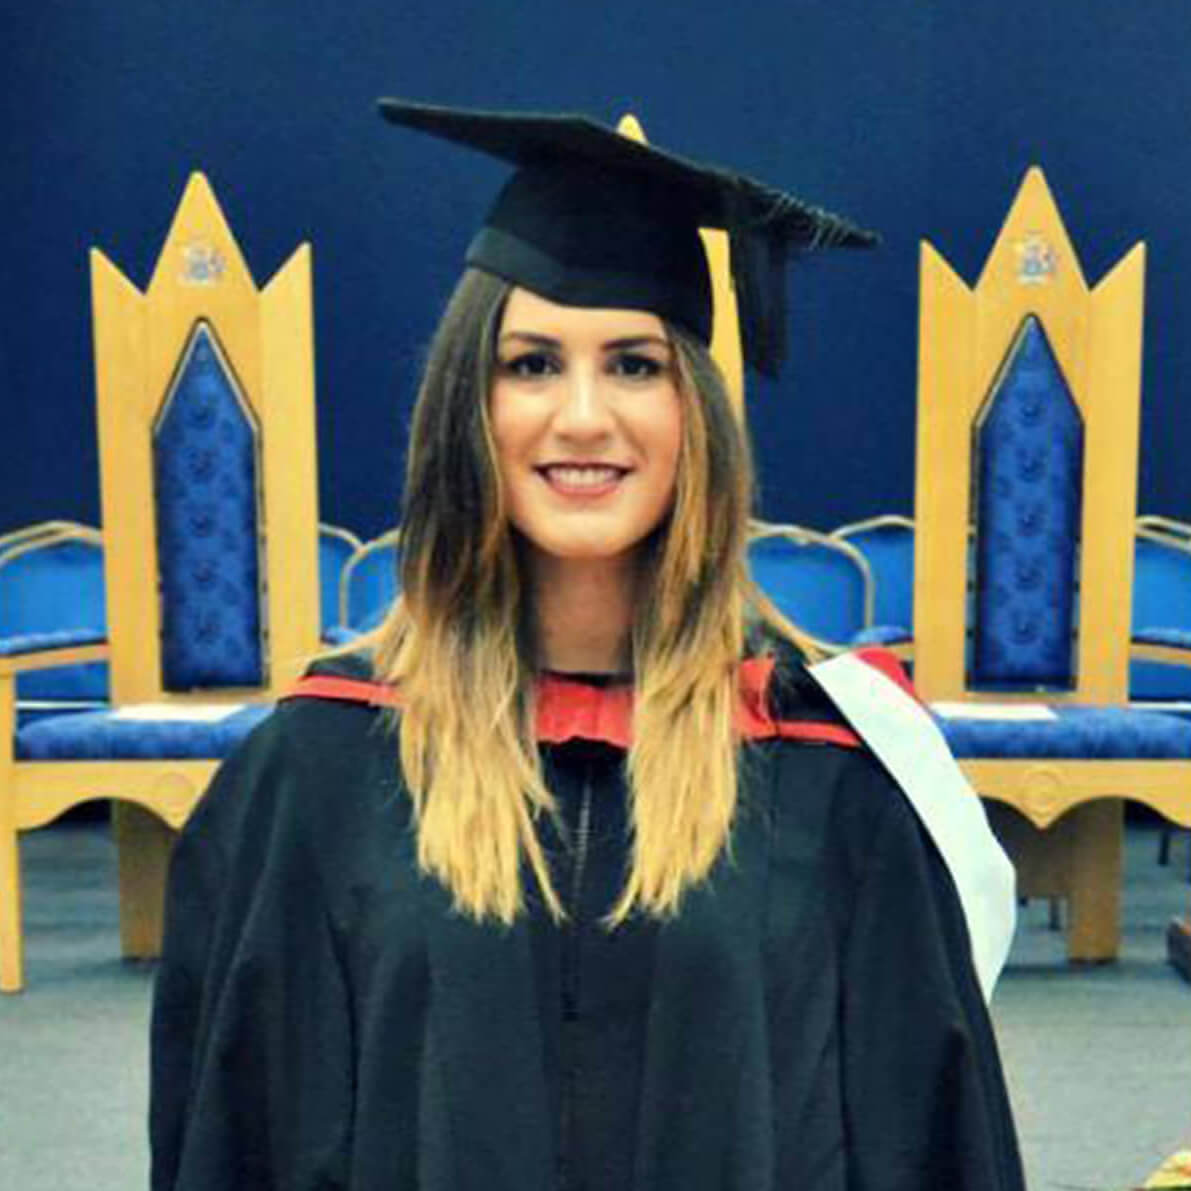 Chiara Giuliano at her graduation in her cap and gown